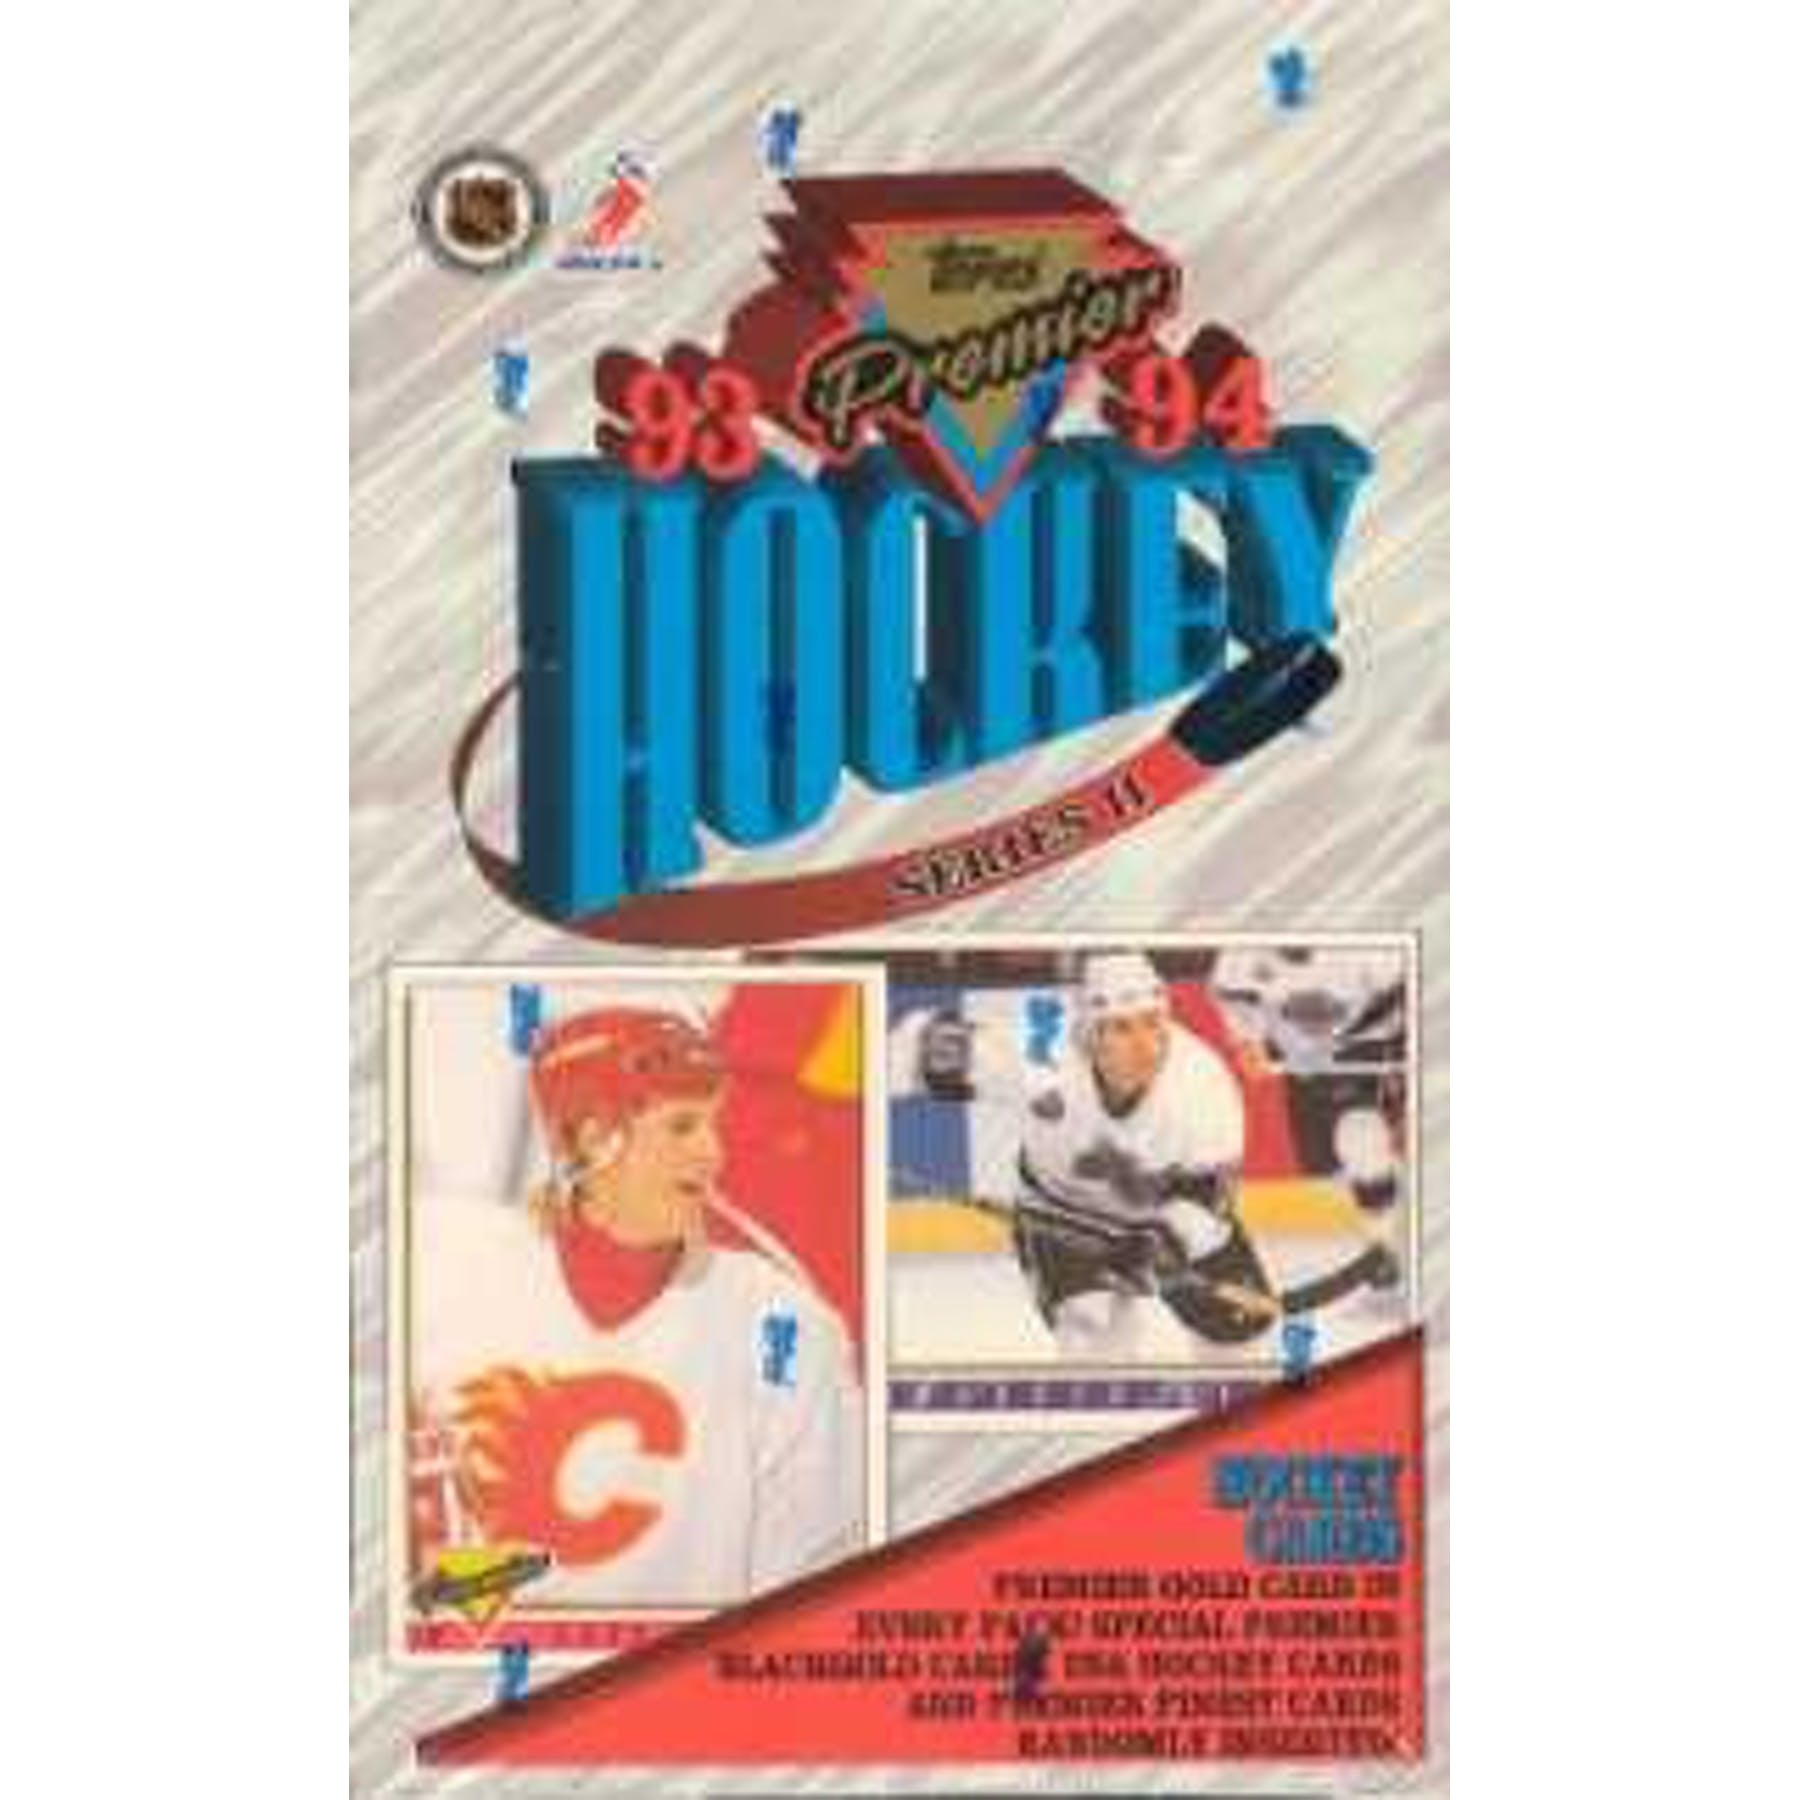 1993-94 Topps Premier Hockey Series 2 Hobby Box | Eastridge Sports Cards